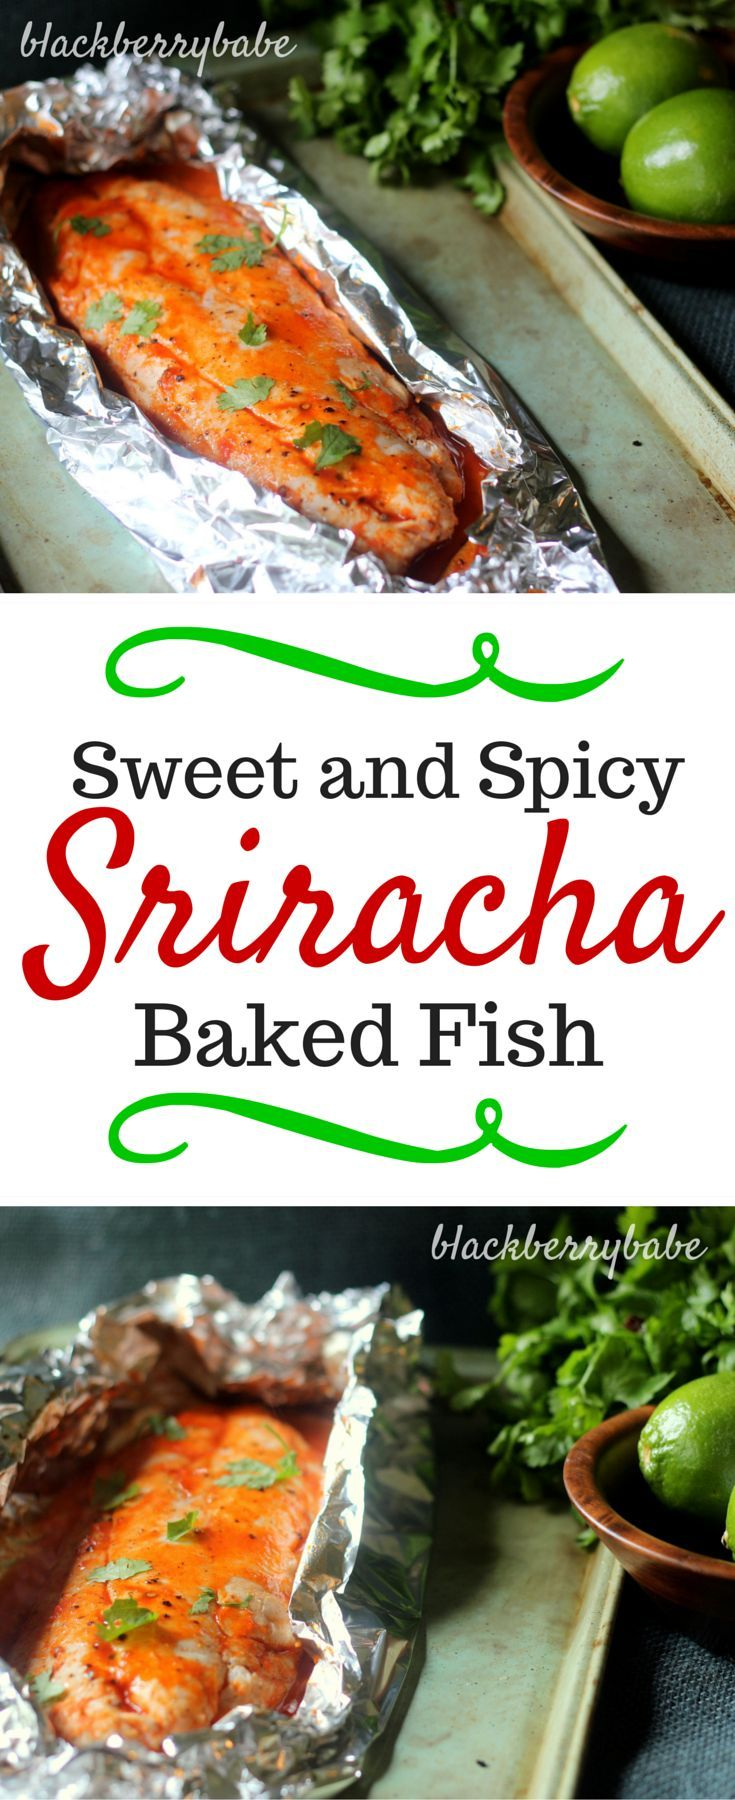 Sweet and Spicy Sriracha Baked Fish #recipe #fish #sriracha   Recipe by blackberrybabe.com   Red Snapper, Tilapia, Grouper, White Fish